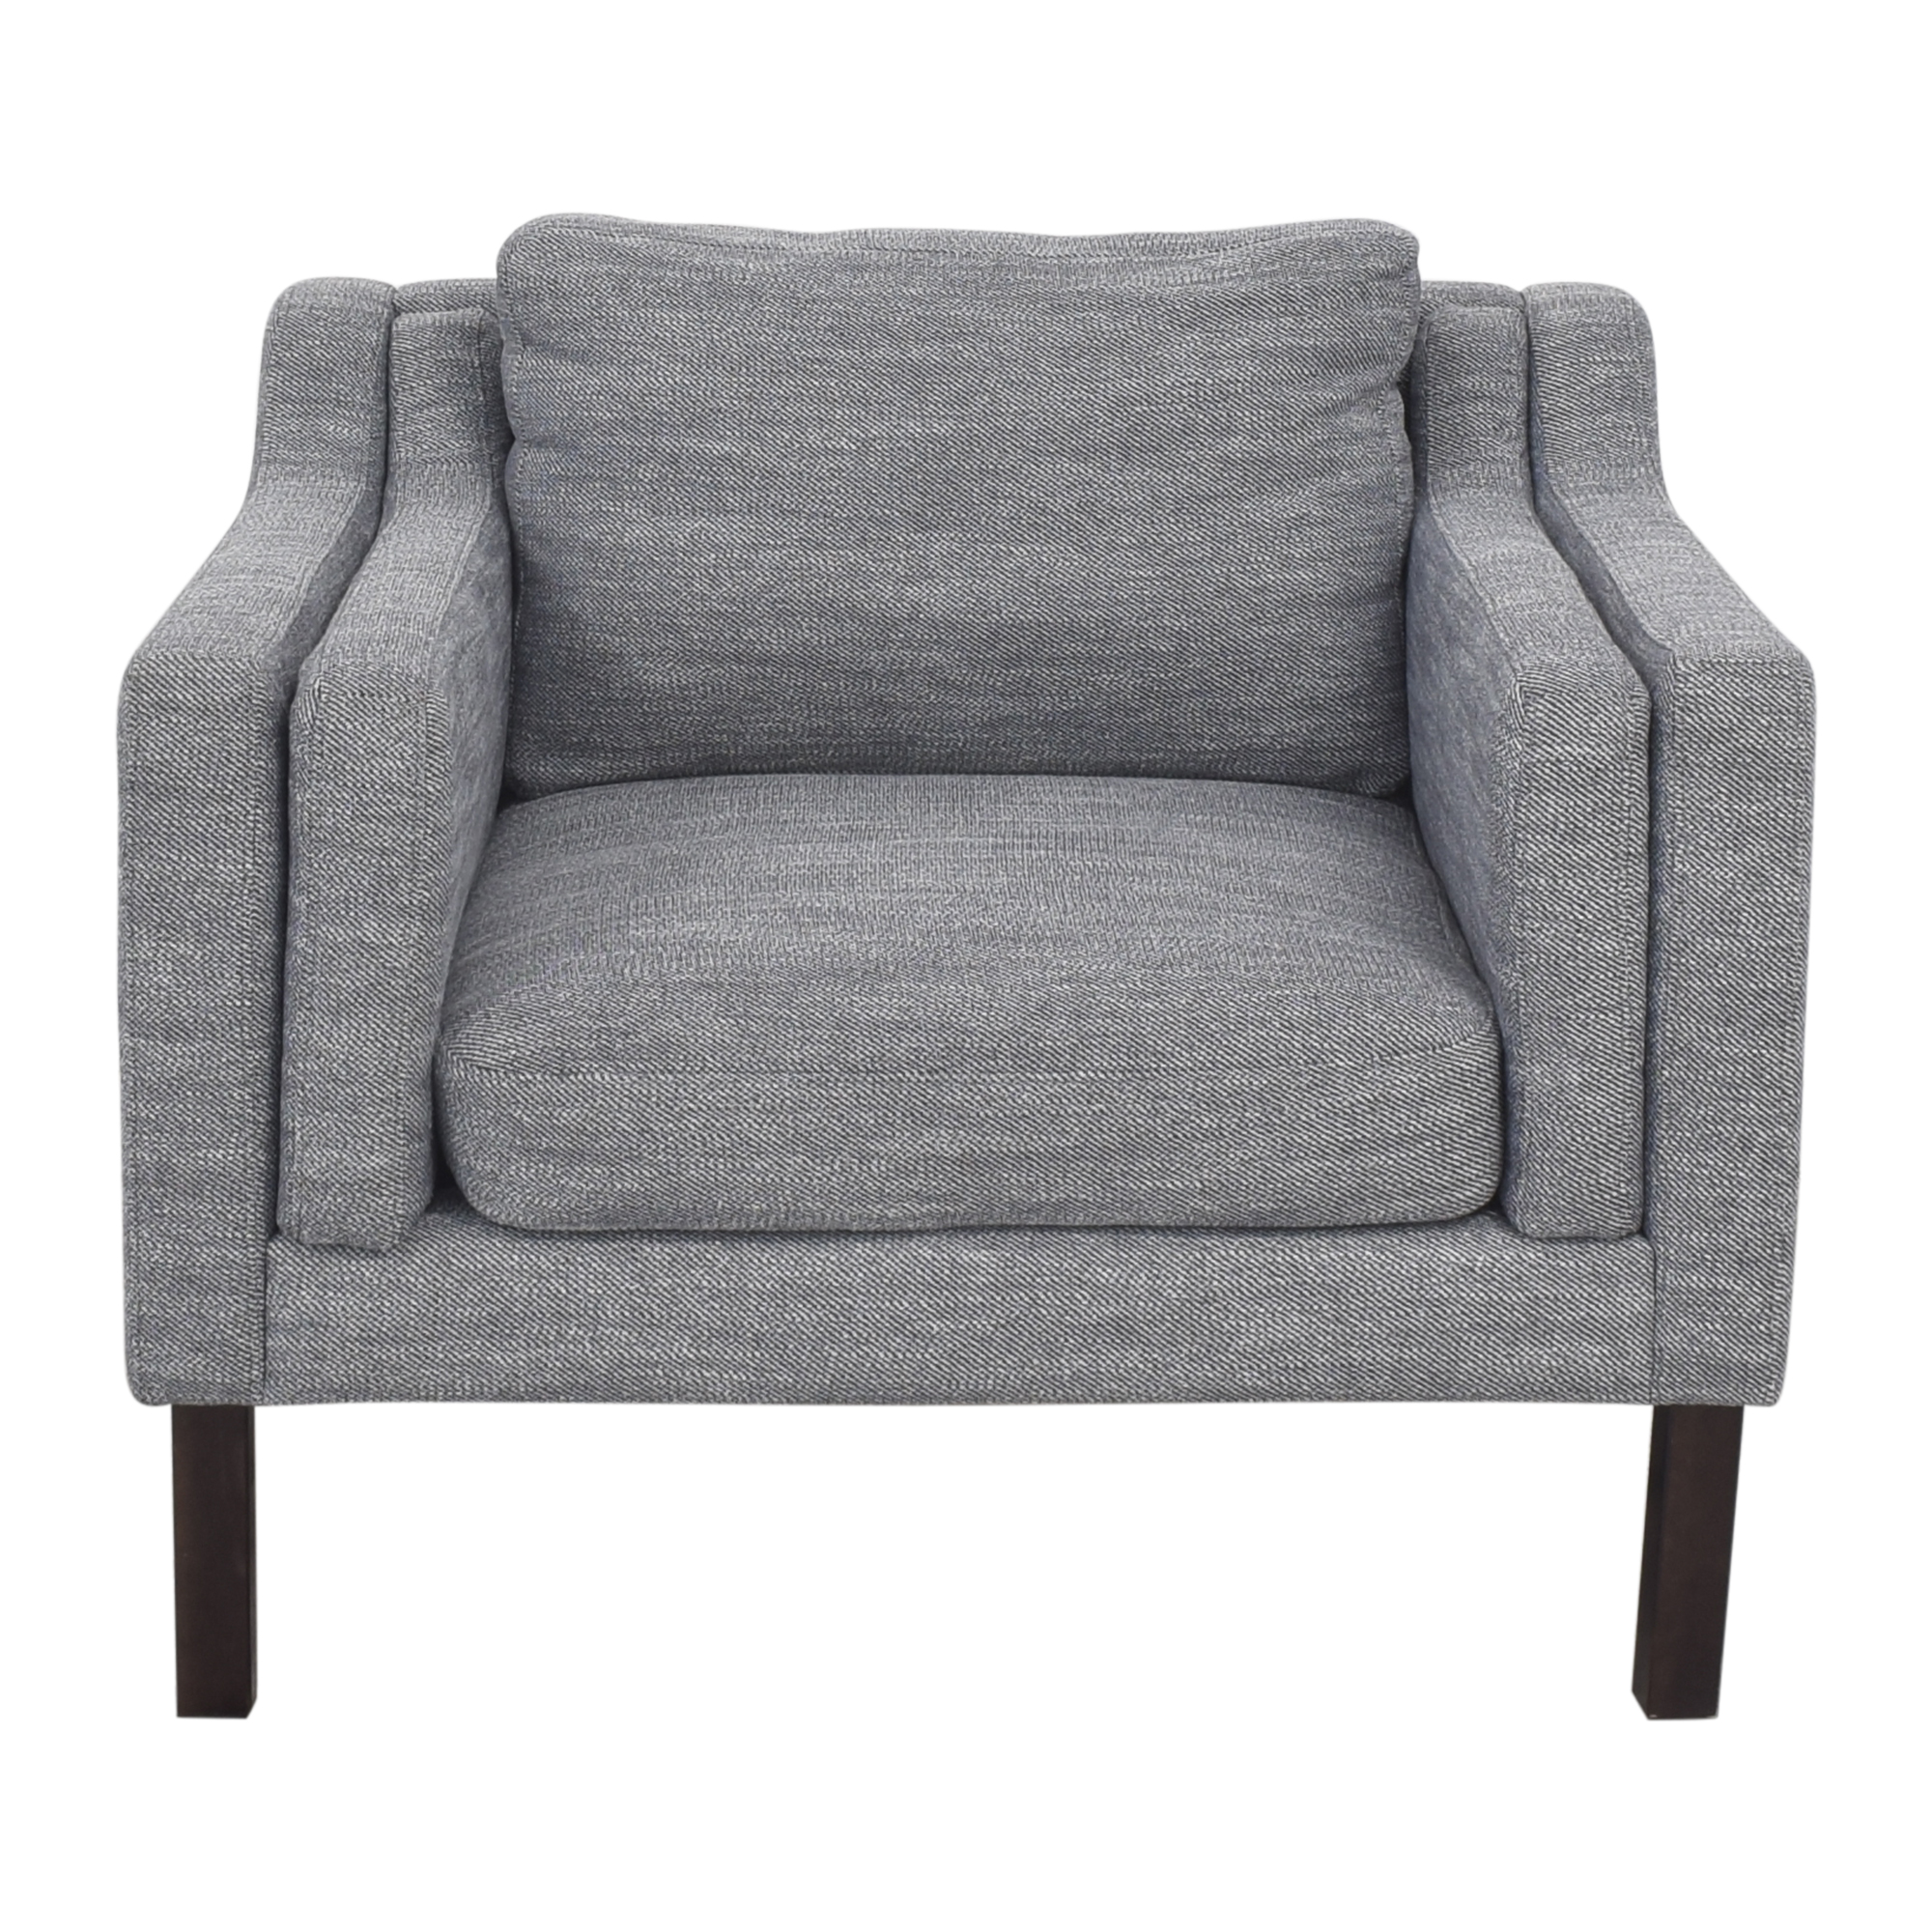 Kardiel Kardiel Monroe Chair Accent Chairs